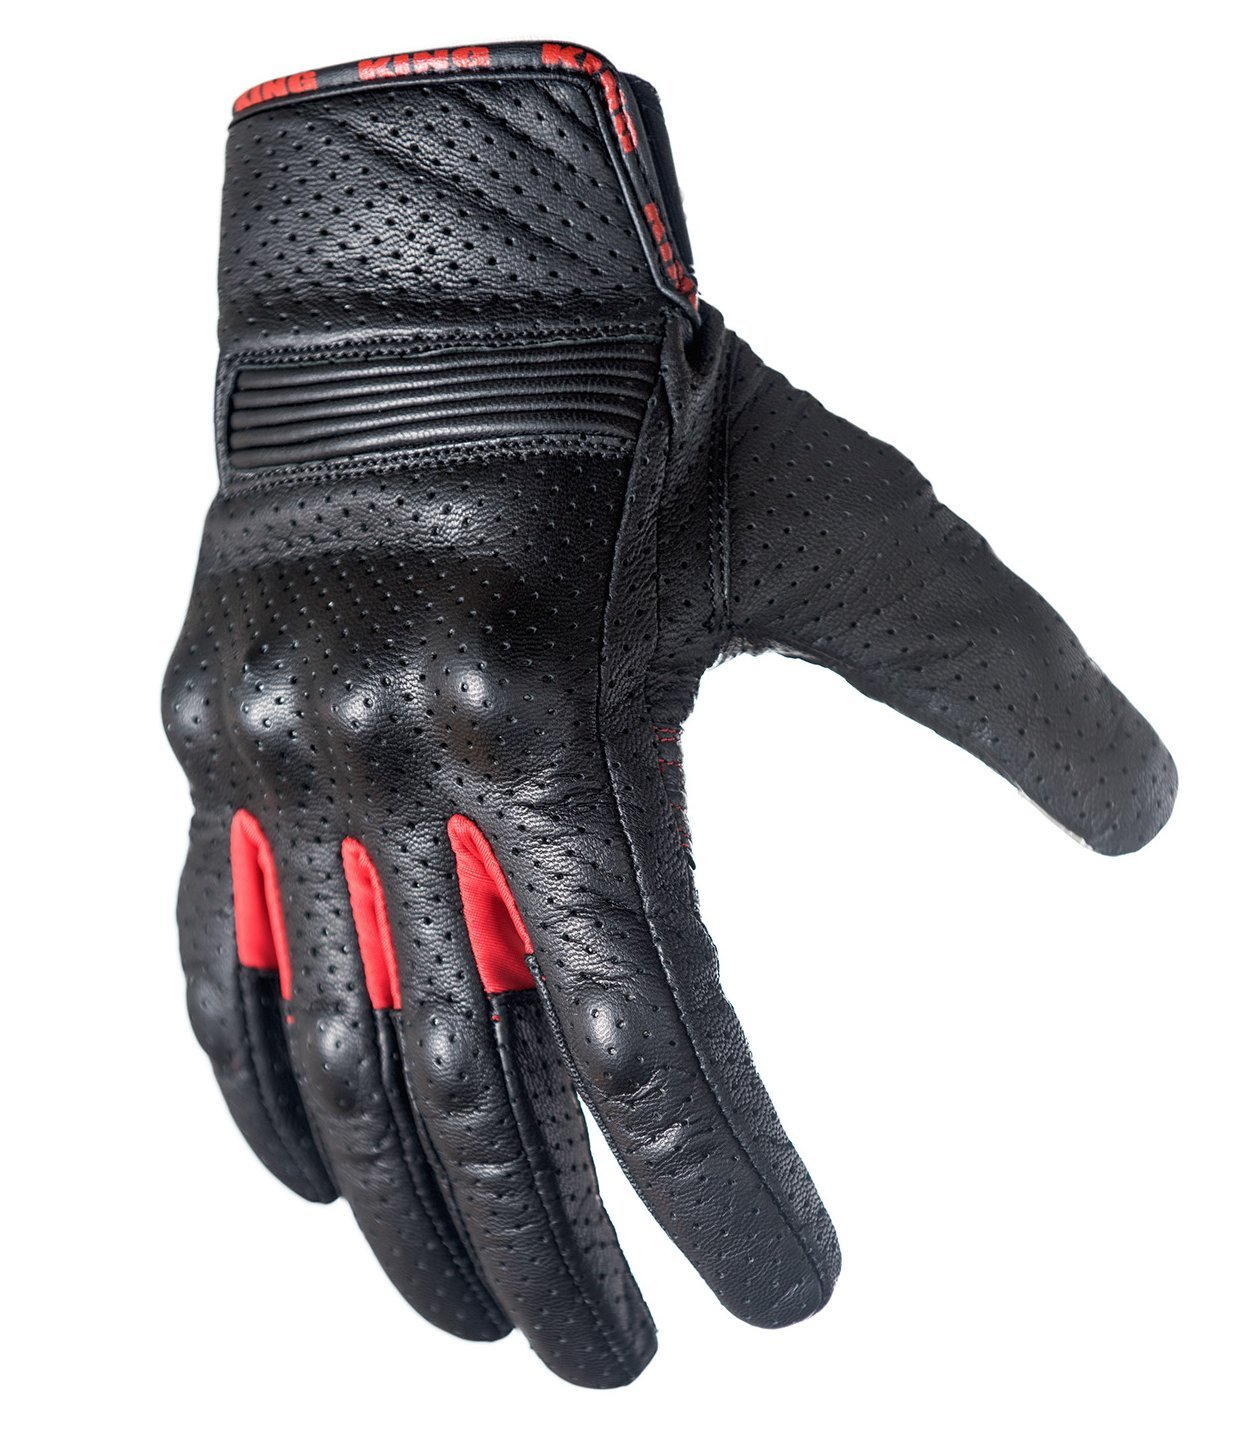 Motorcycle Biker Gloves Black Premium Leather | Padded All Weather Feature for Men and Women | Breathable Moisture Wick Air Flow Technology Between Fingers | SWIFT (Red-Lg) by Protect the King